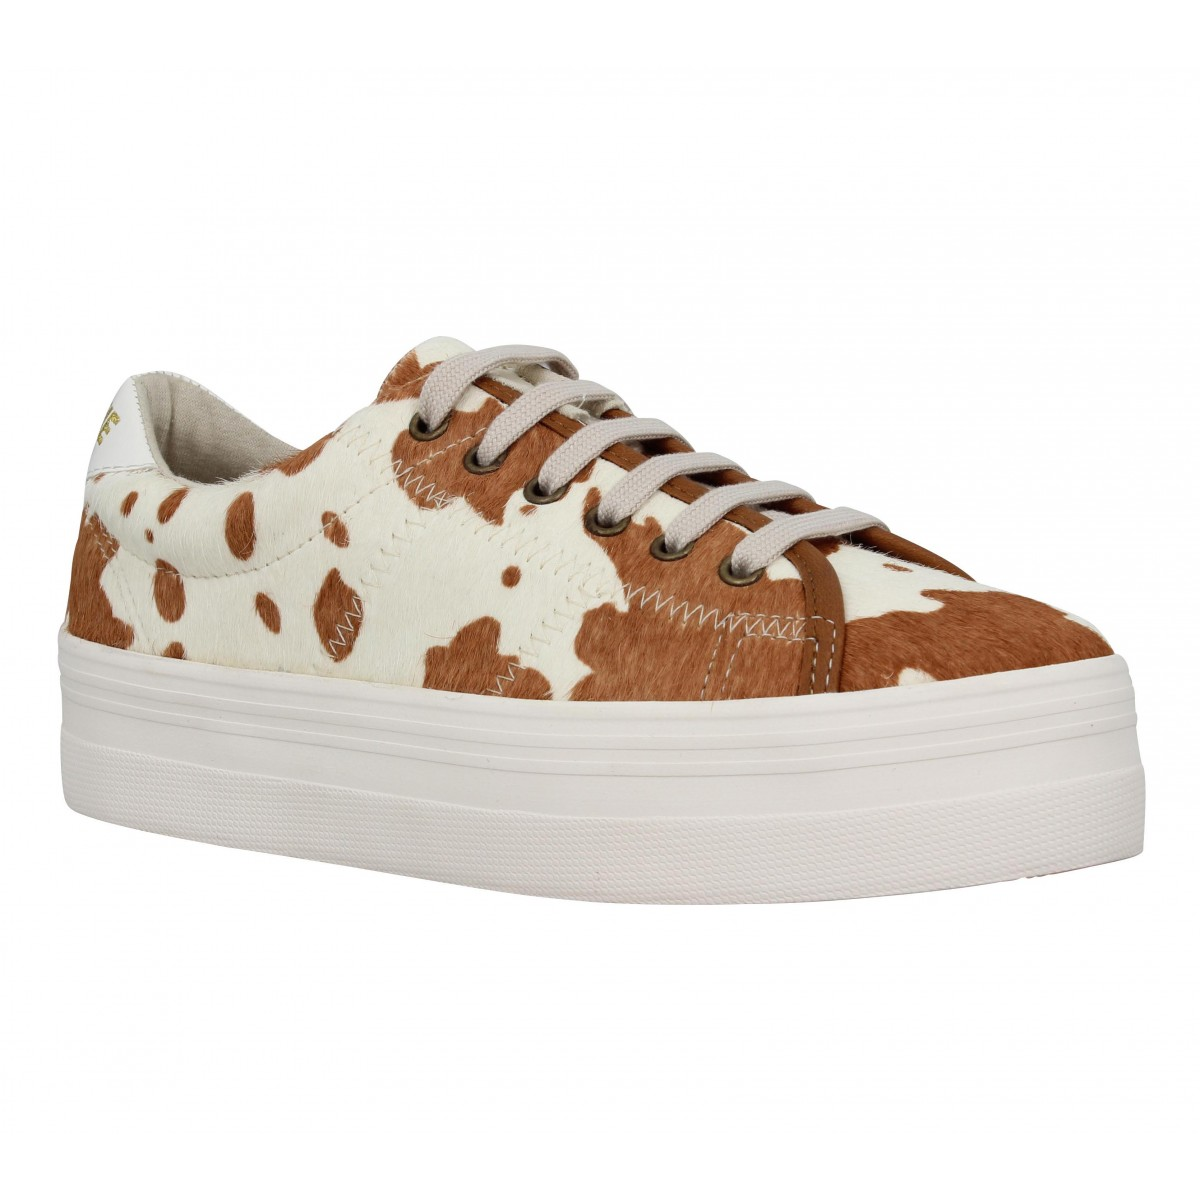 Compensées NO NAME Plato Sneaker pony cow Femme Brown